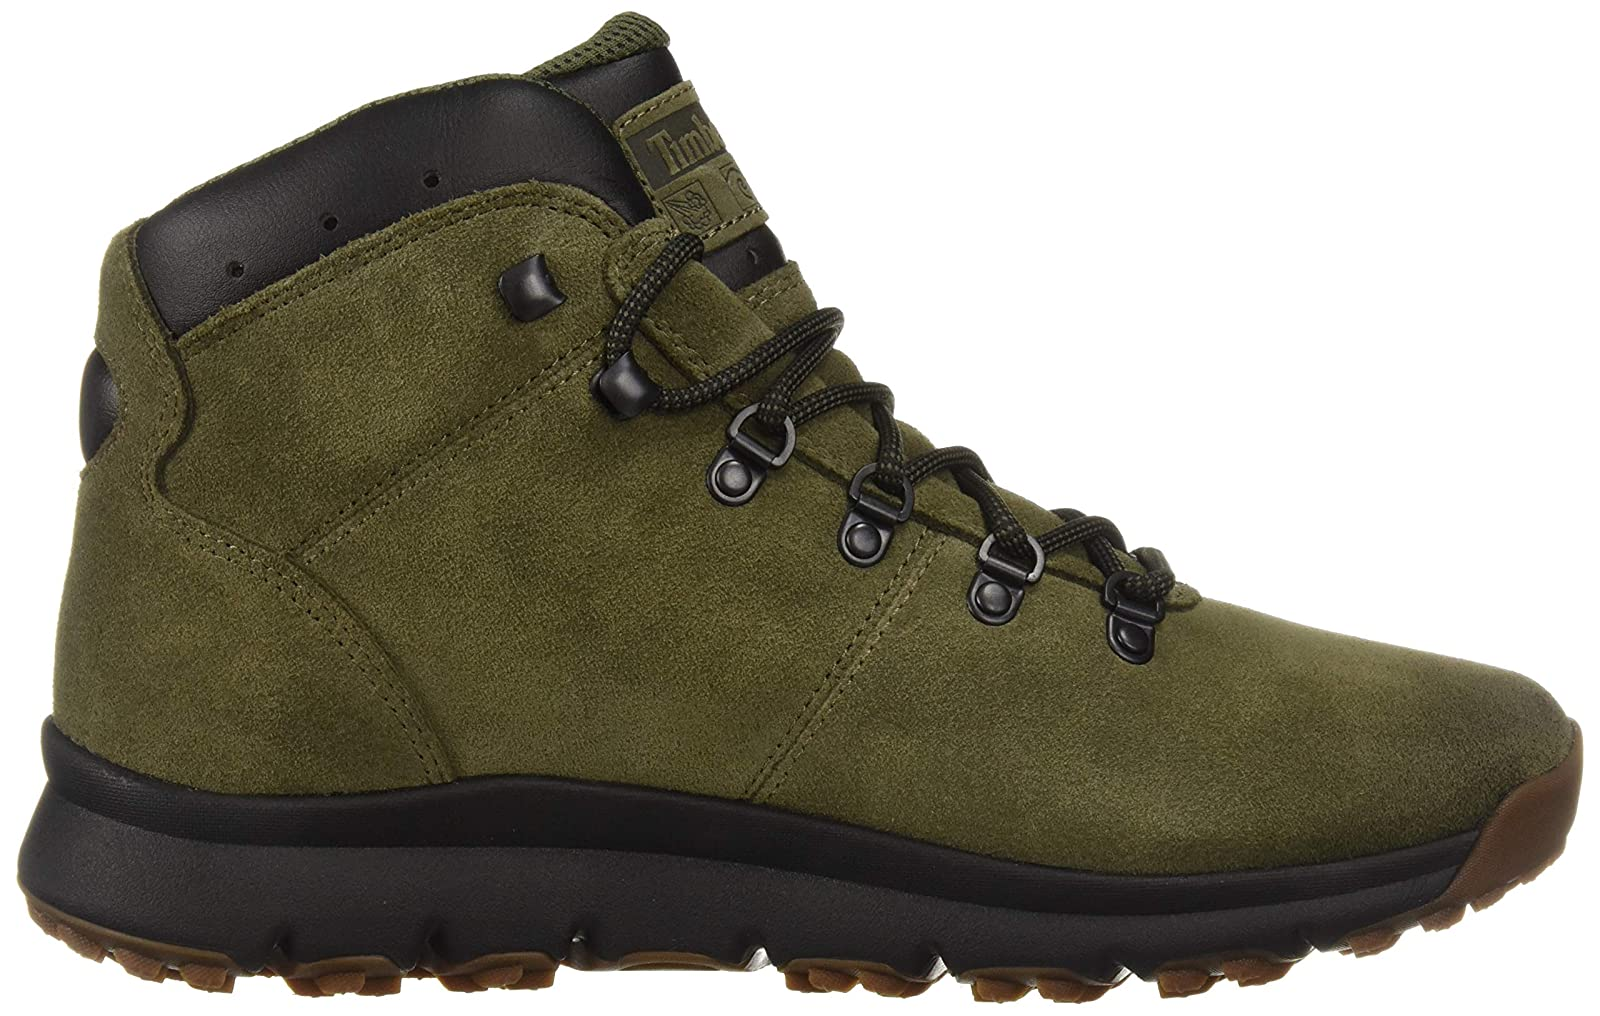 Timberland Men's World Hiker Mid Ankle TB0A1RJWA58 - 6